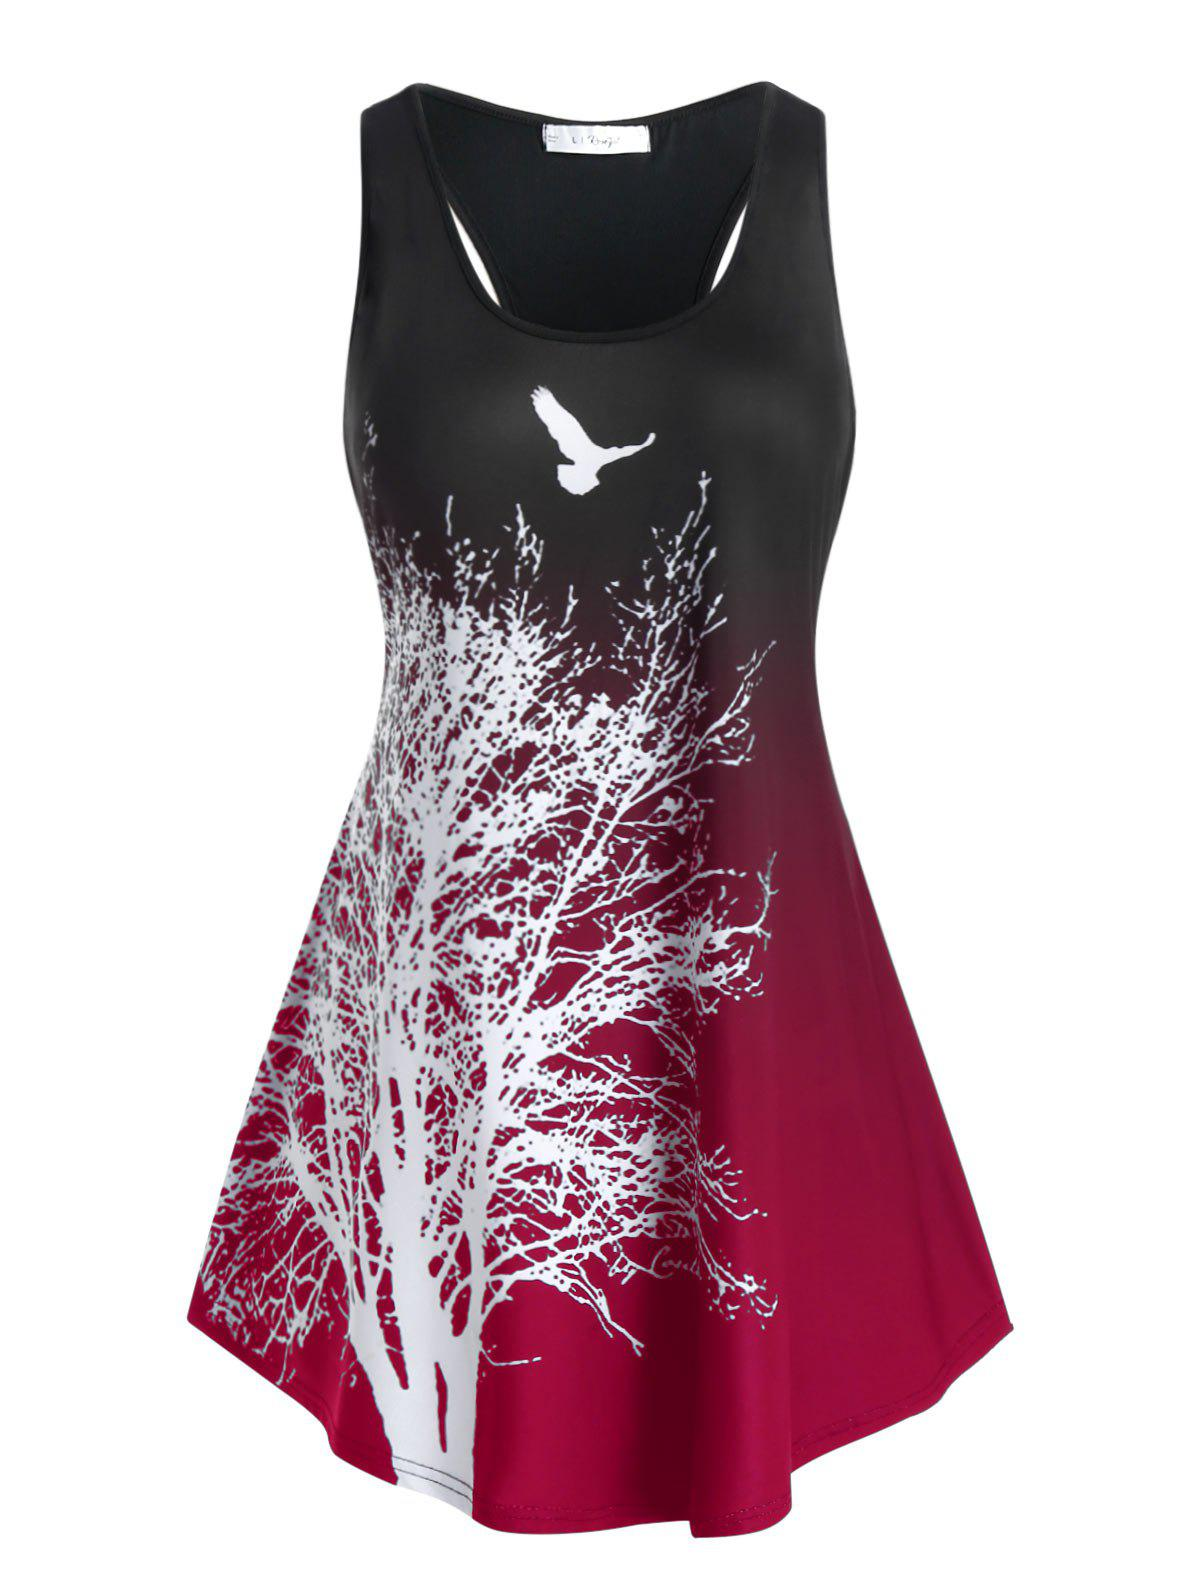 Plus Size Ombre Tree Print Racerback Tank Top - RED WINE 4X